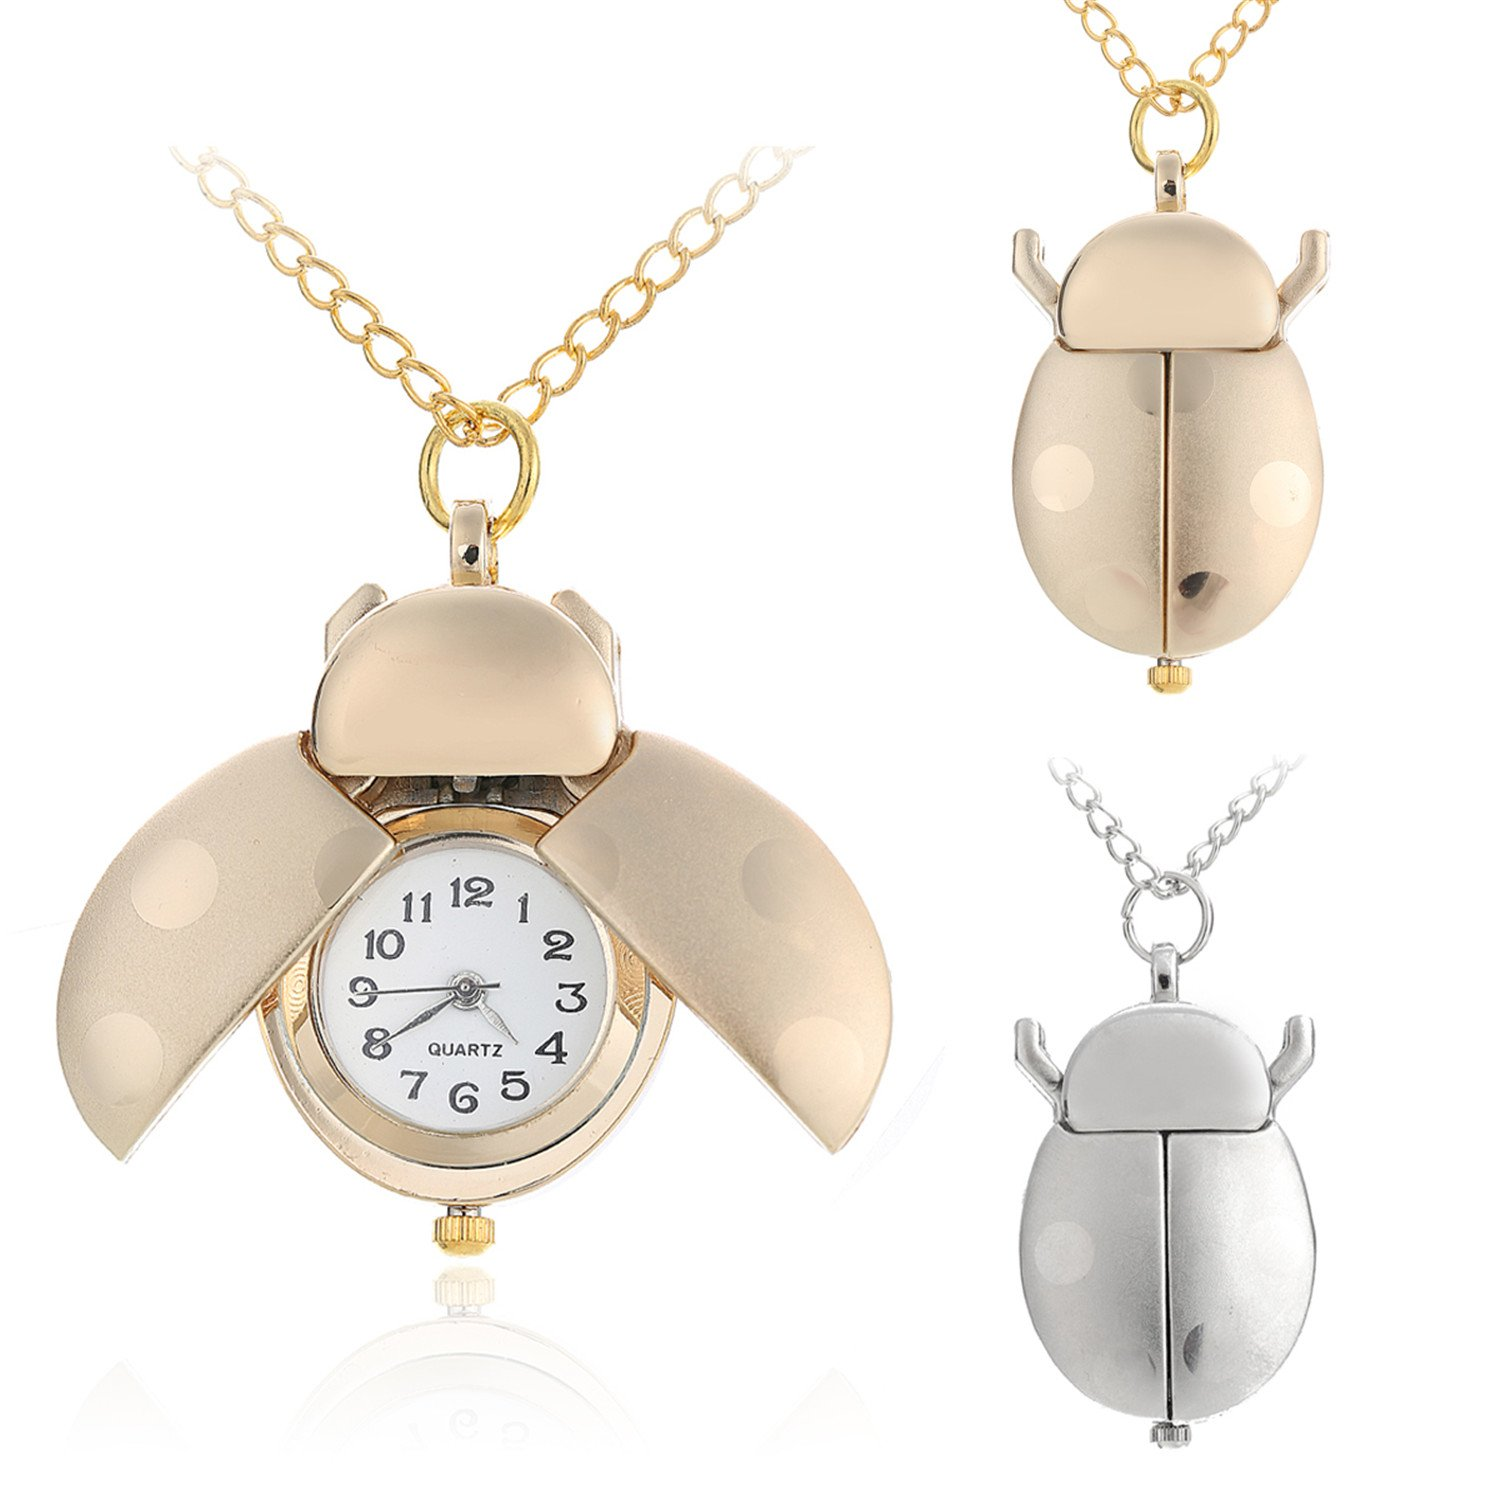 Vavna Gold Sliver Stainless Steel Ladybug Pocket Watch W/Long Chain Free Gift Pouch